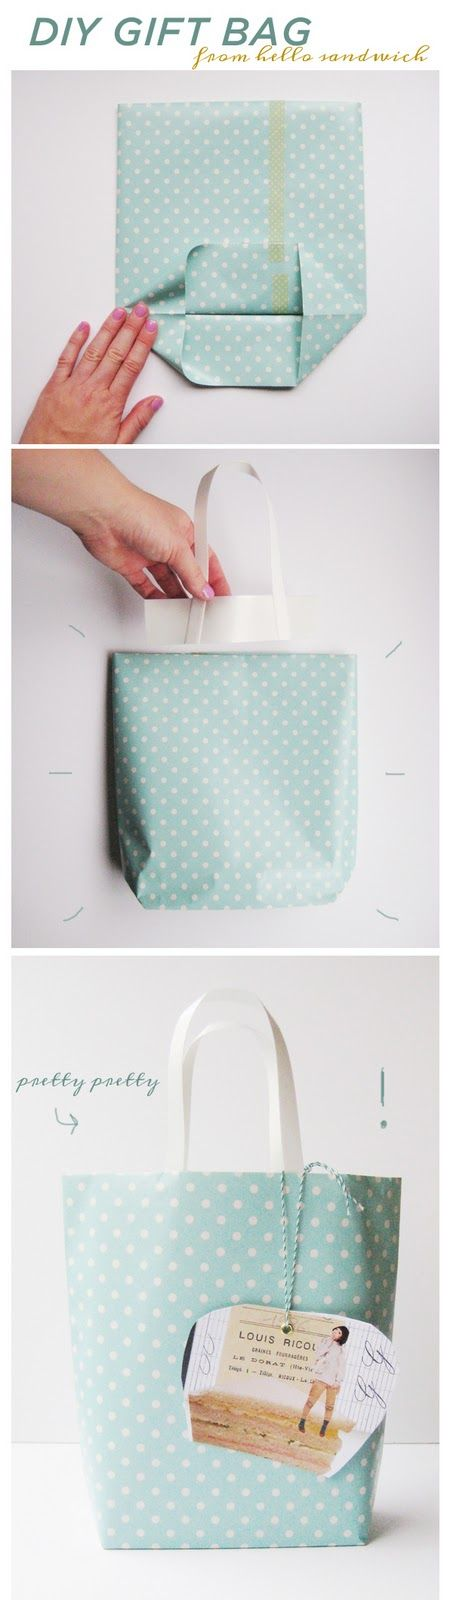 Make gift bags using wrapping paper. Perfect for those oddly shaped gifts!